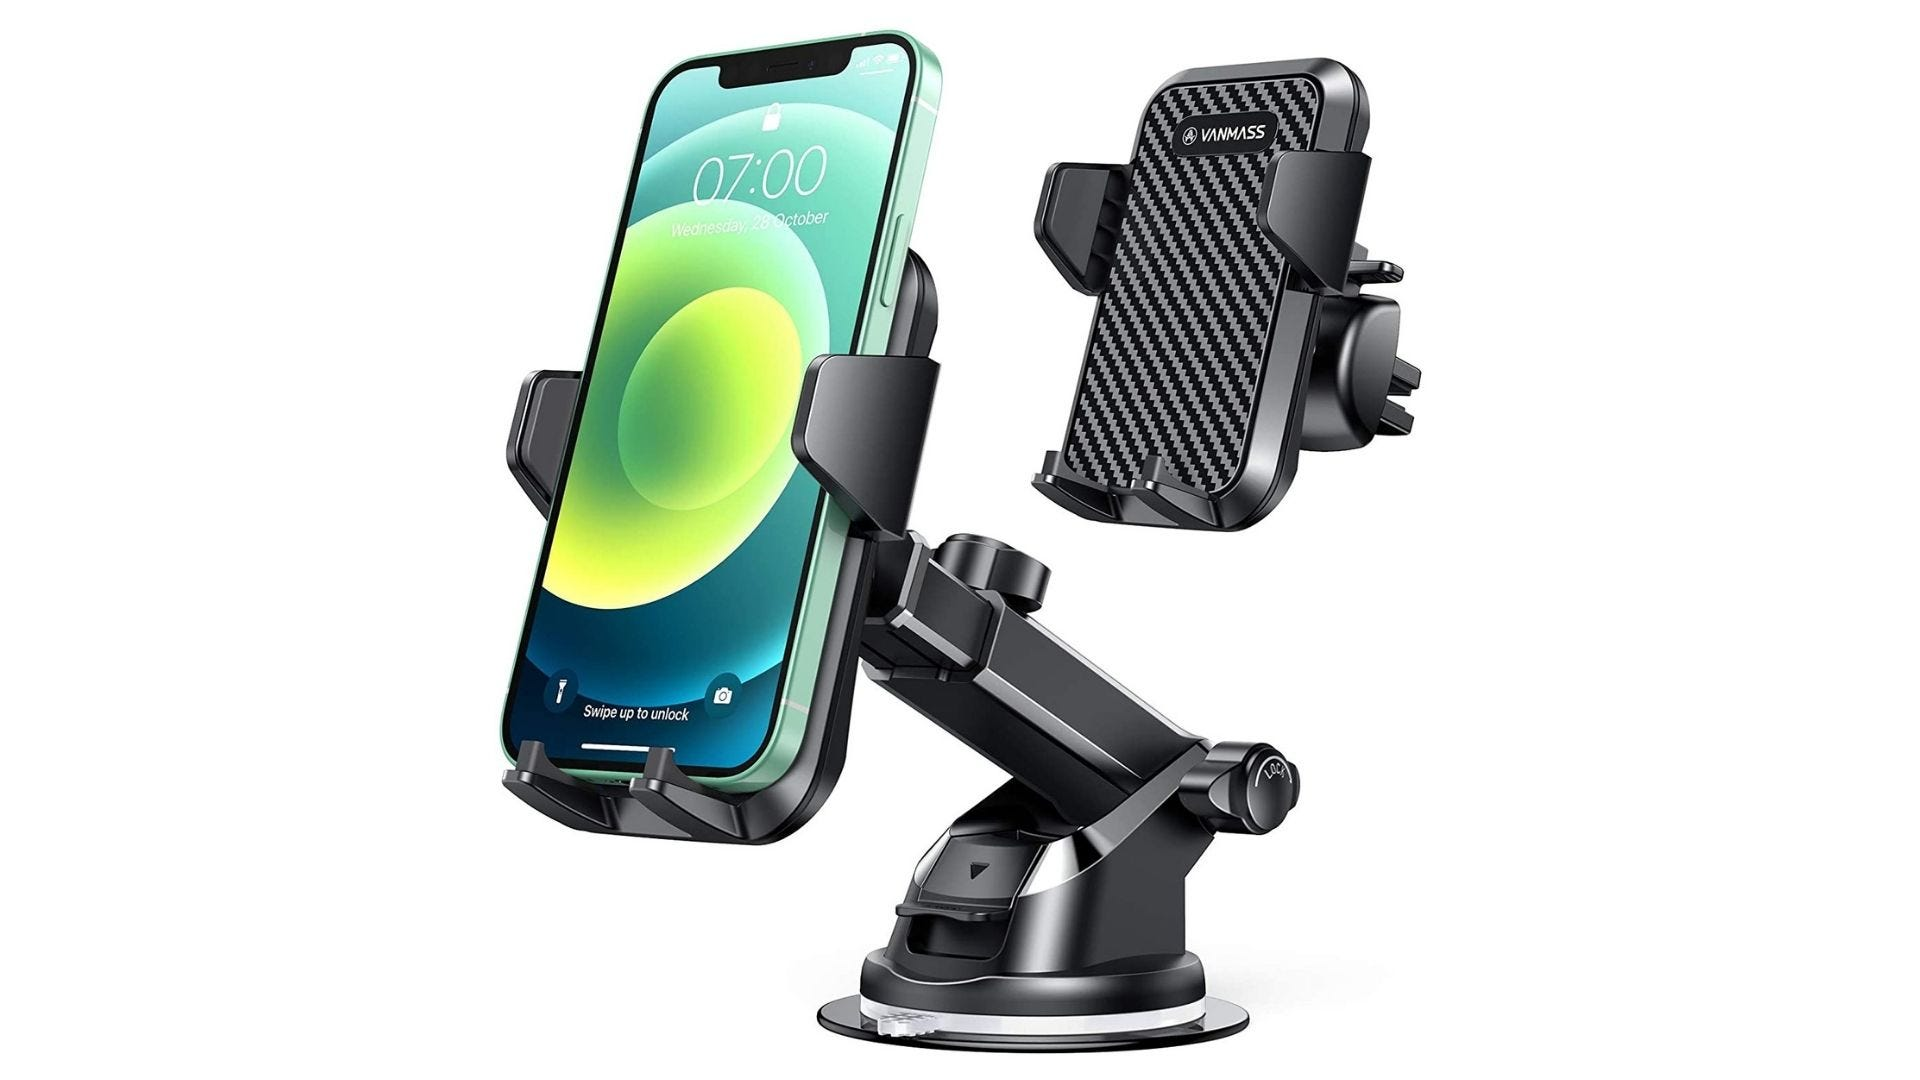 vanmass phone mount for thick phone cases